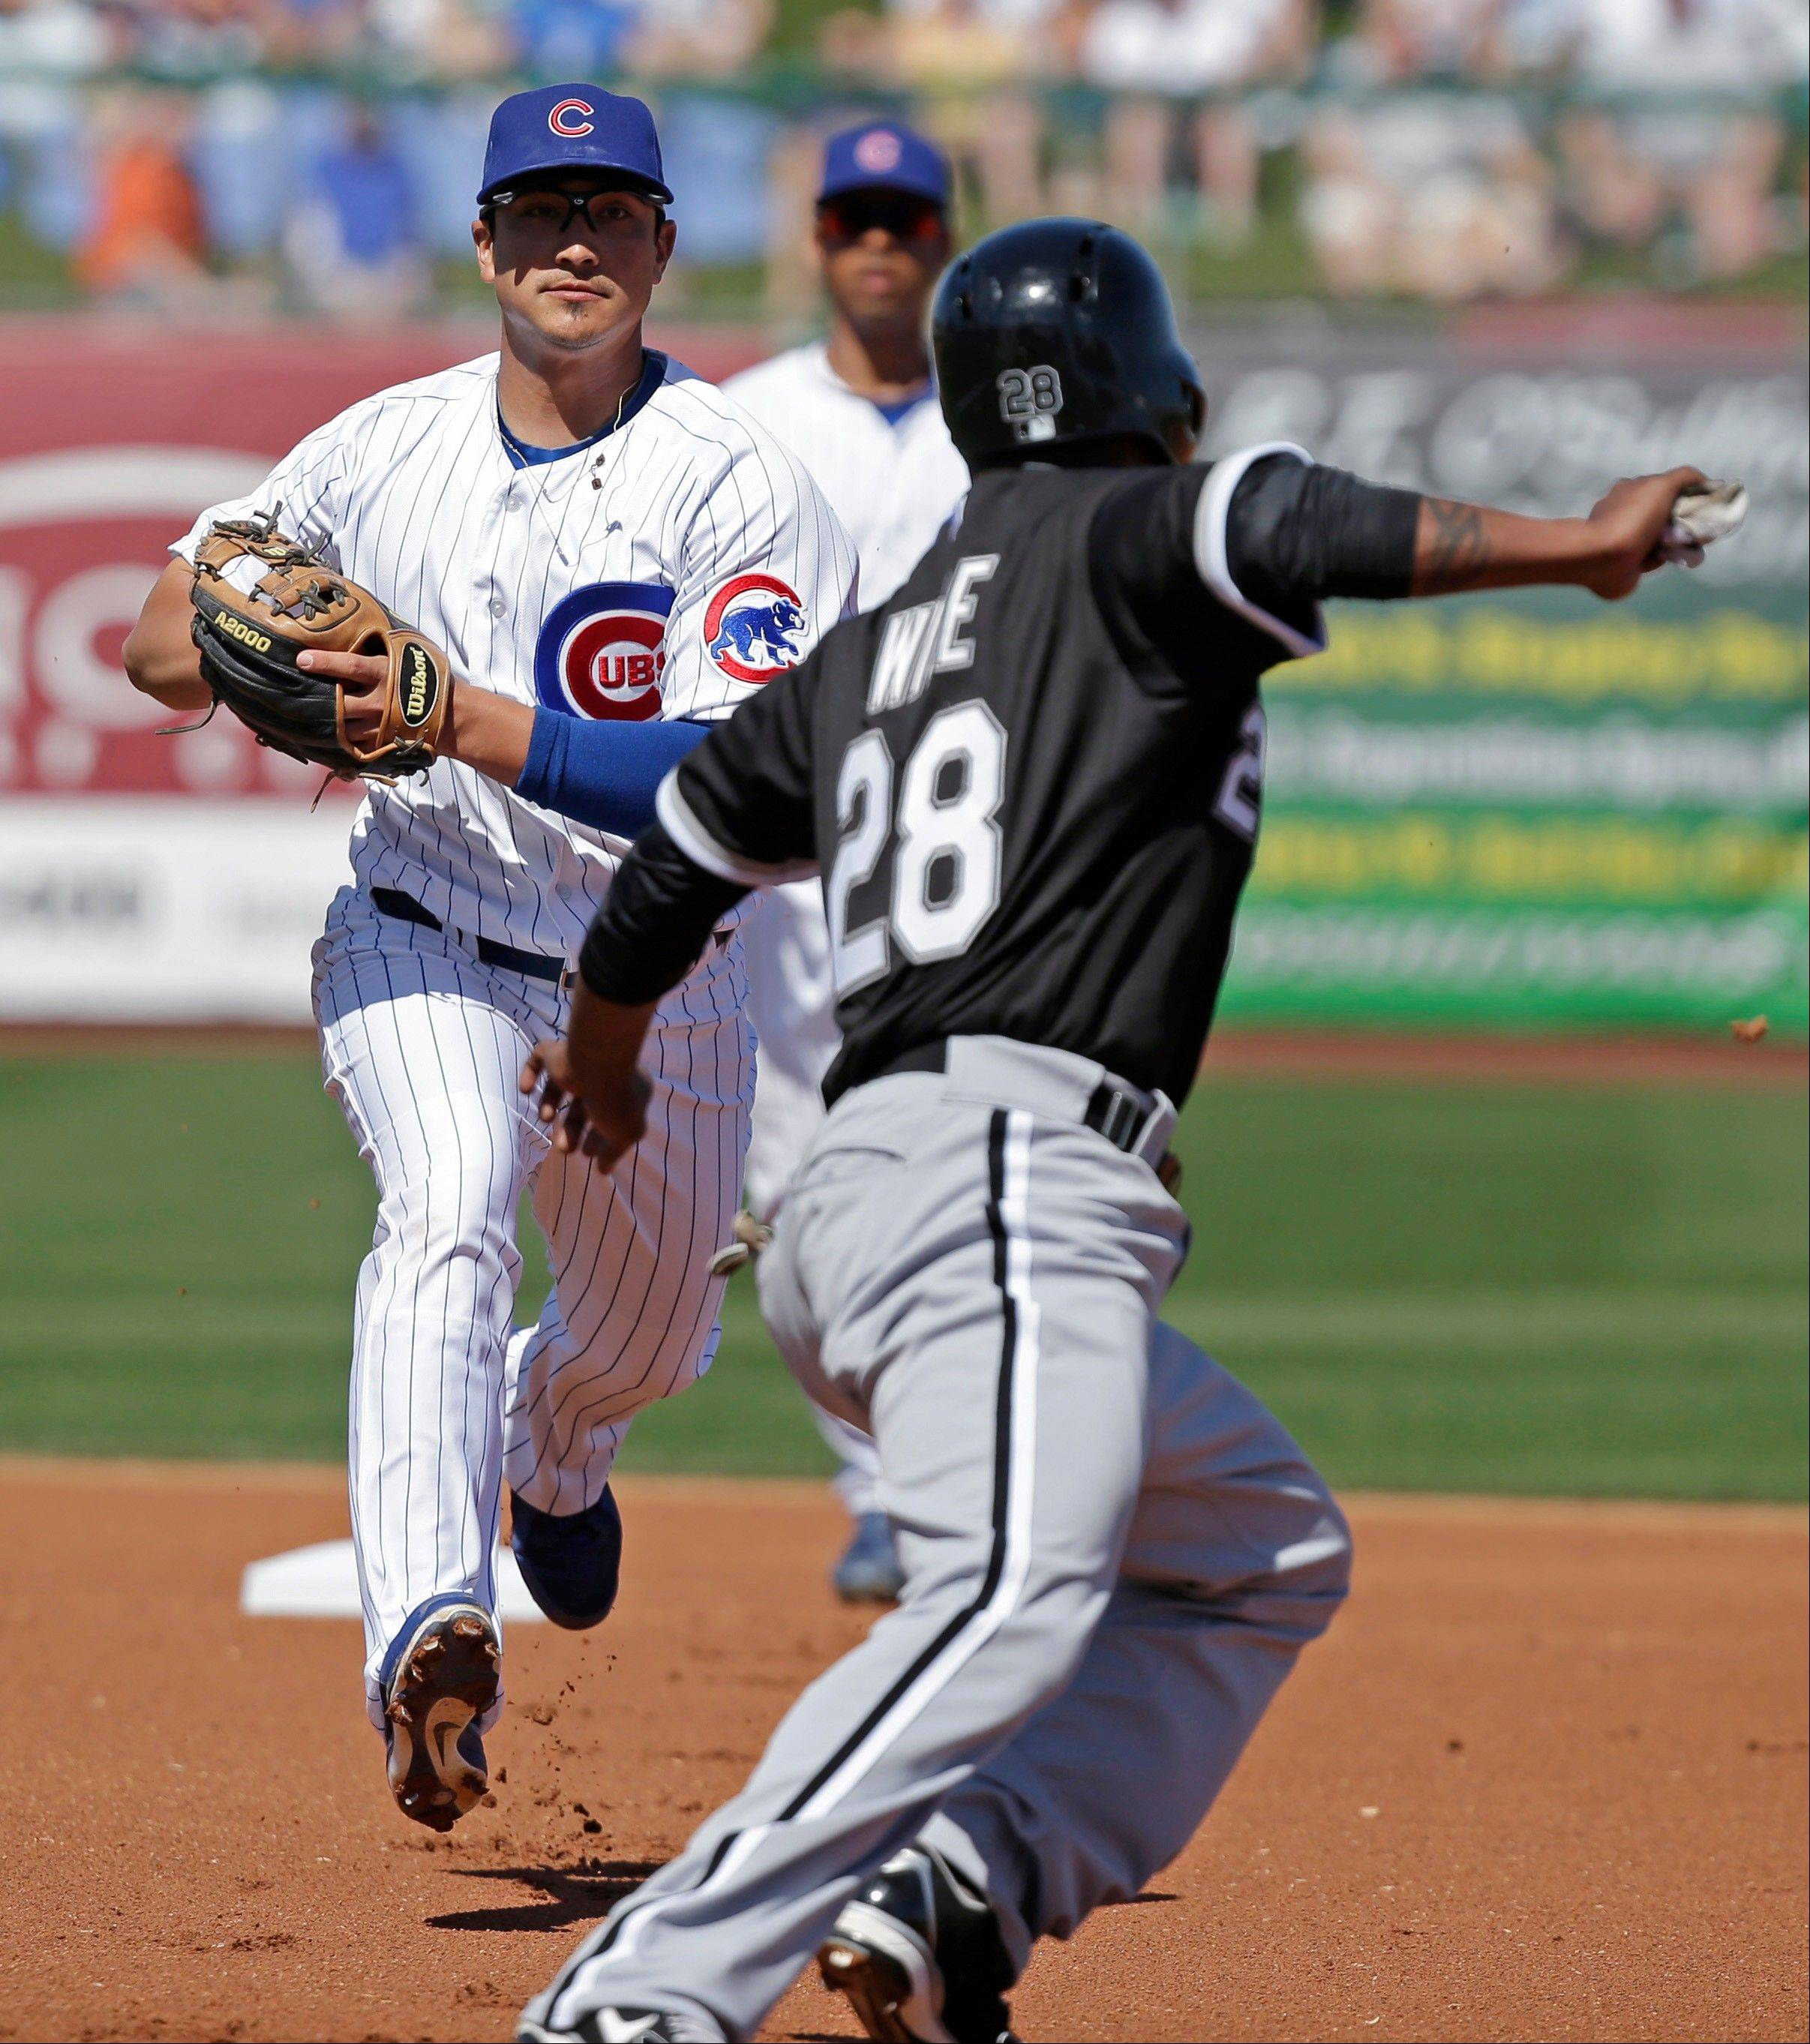 Chicago White Sox's Dewayne Wise (28) is caught is caught off first base as Chicago Cubs' Darwin Barney closes in during the first inning of a spring training baseball game Thursday, March 7, 2013, in Mesa, Ariz. Wise was out. (AP Photo/Morry Gash)